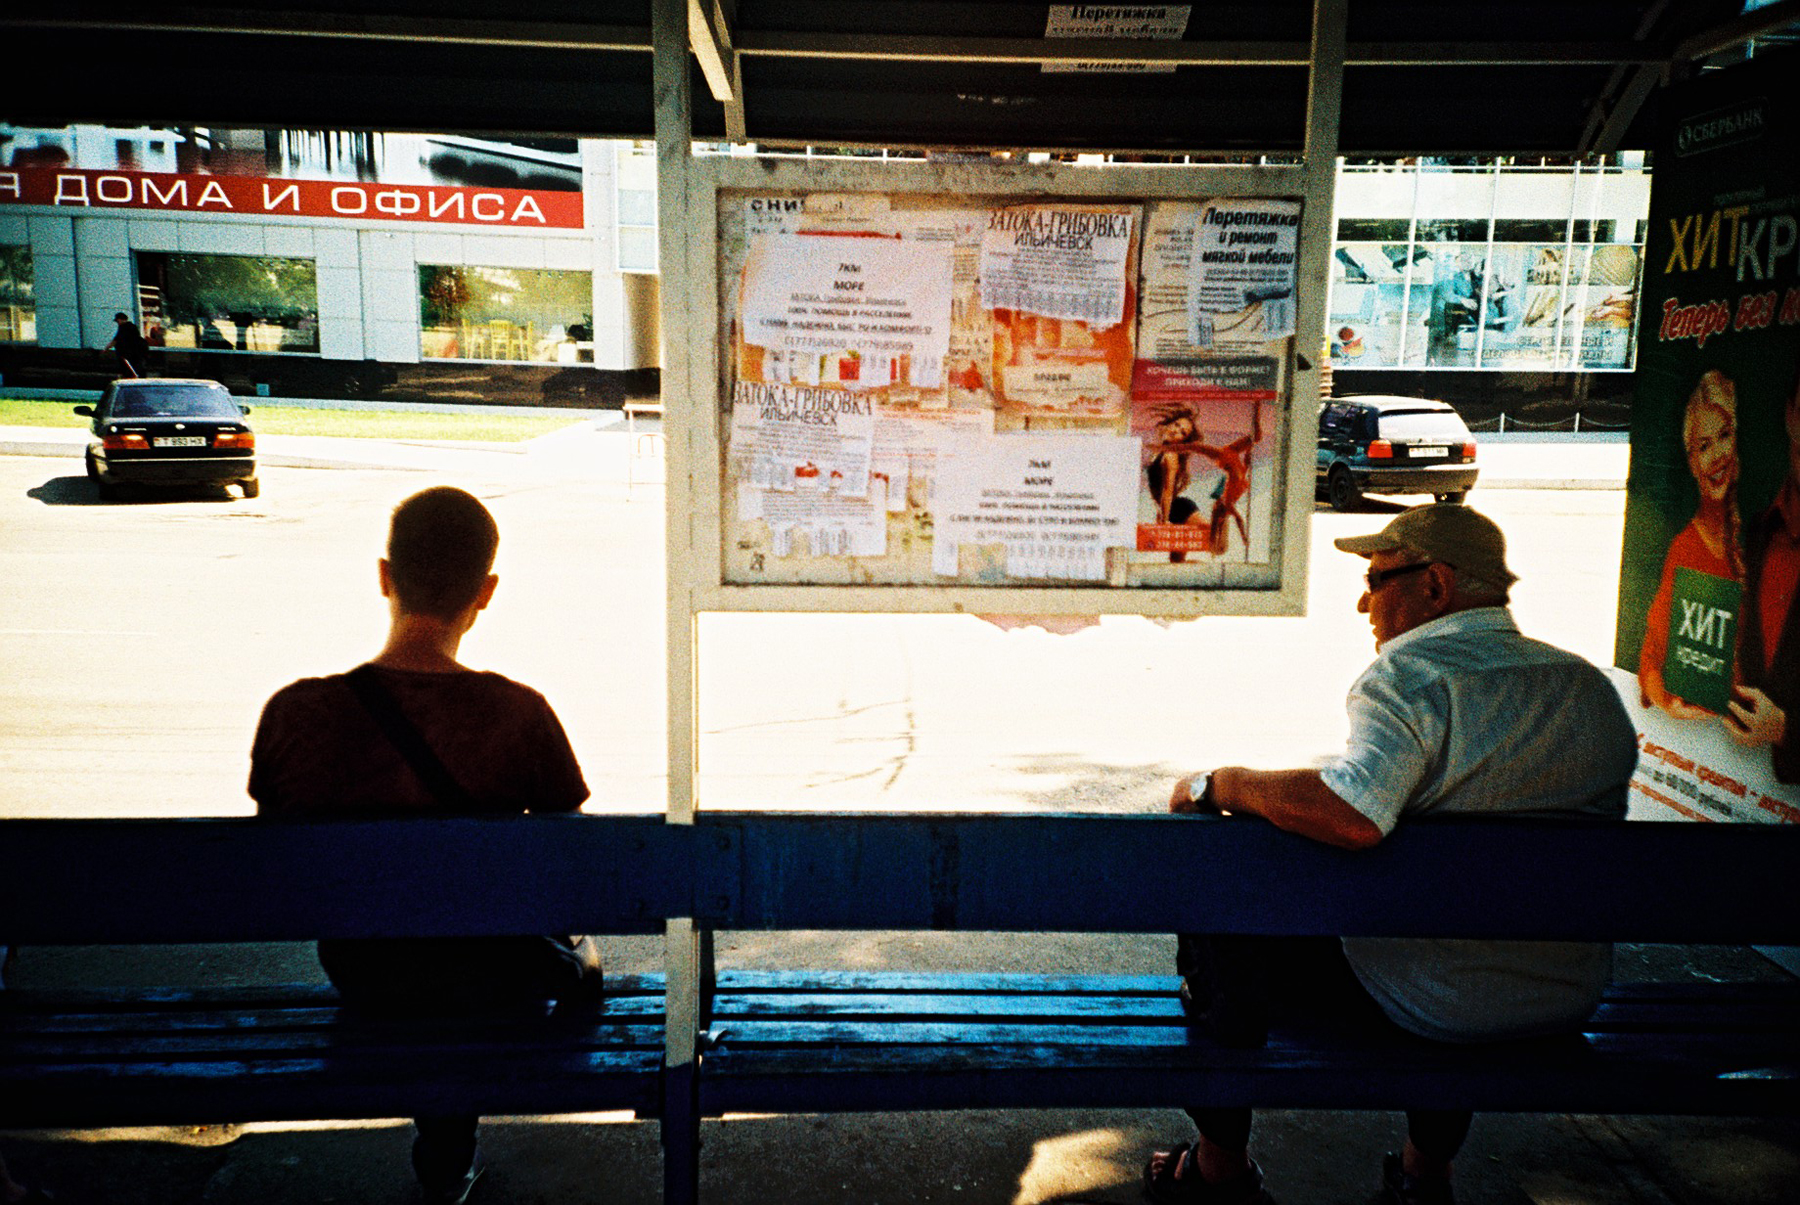 Two men in bus shelter (Pic: Stephen Dowling)